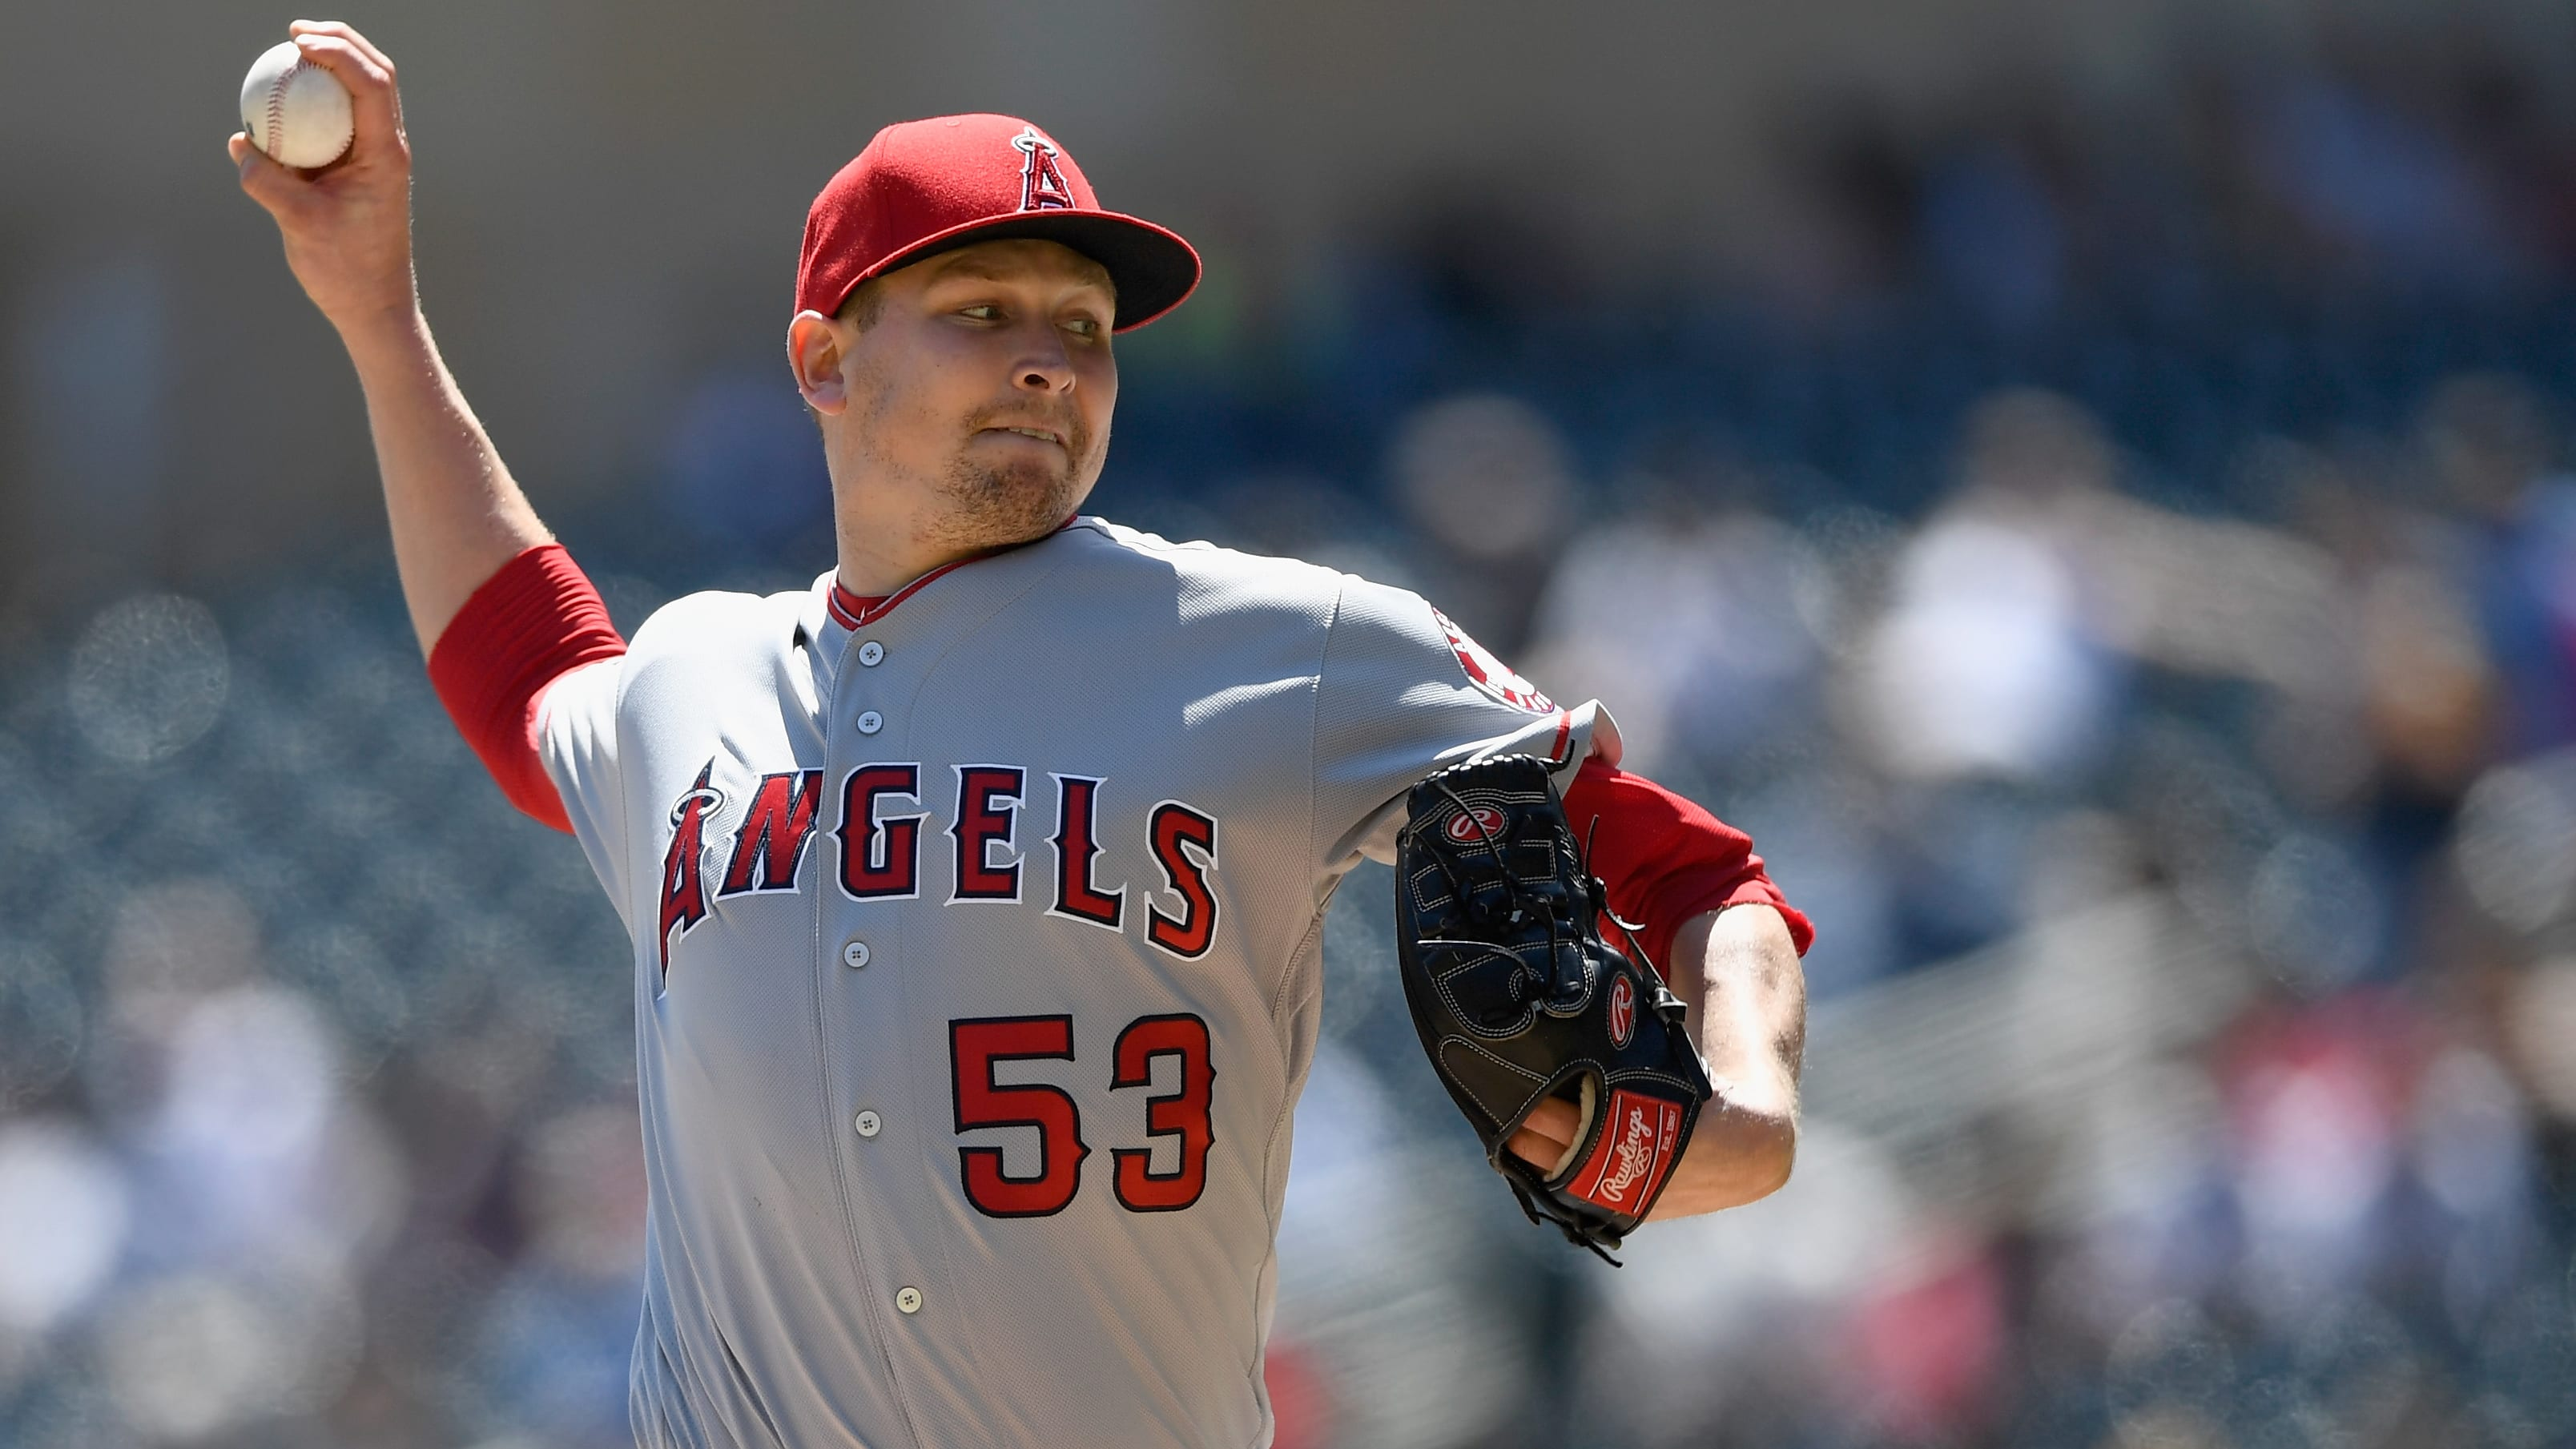 MINNEAPOLIS, MN - MAY 15: Trevor Cahill #53 of the Los Angeles Angels delivers a pitch against the Minnesota Twins during the first inning of the game on May 15, 2019 at Target Field in Minneapolis, Minnesota. (Photo by Hannah Foslien/Getty Images)